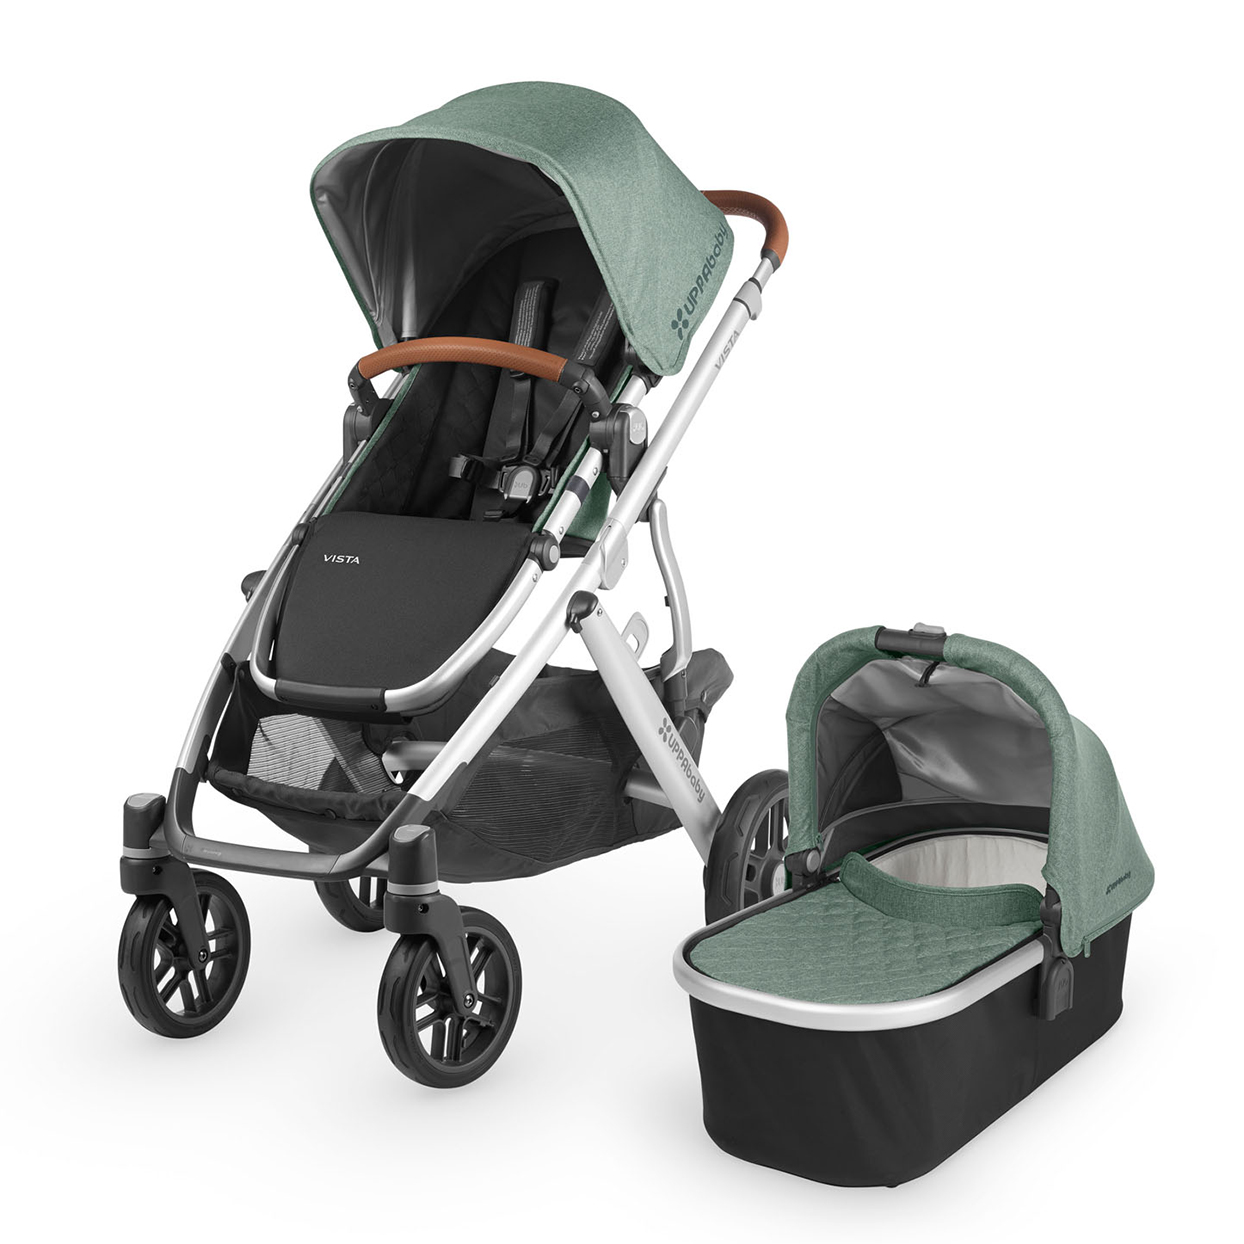 The UPPAbaby Vista luxe stroller